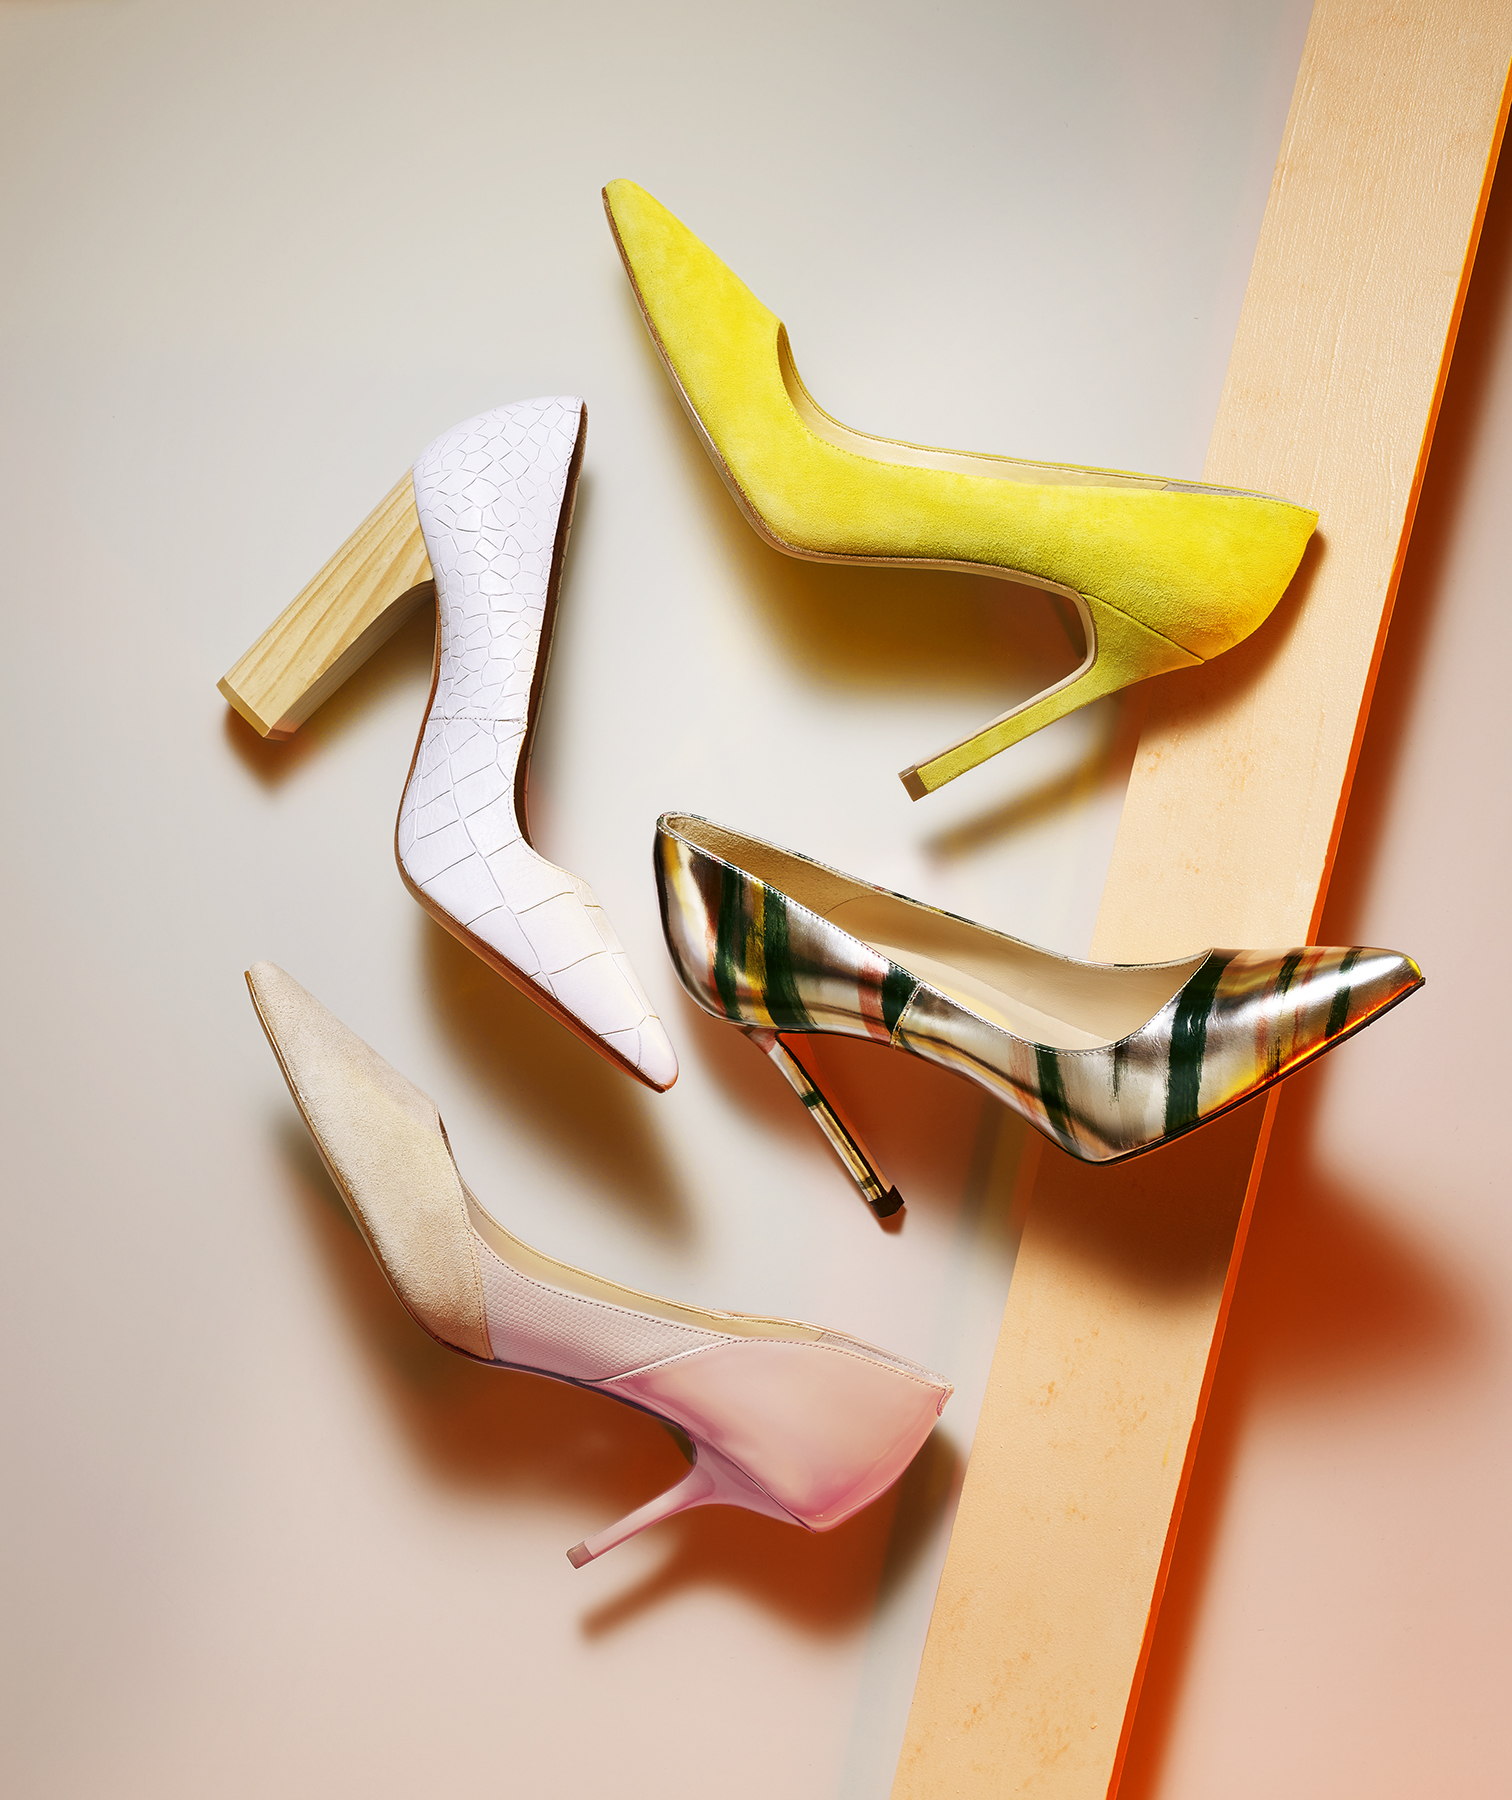 197da255cfd 7 Things Every Woman Needs to Know About Wearing Heels